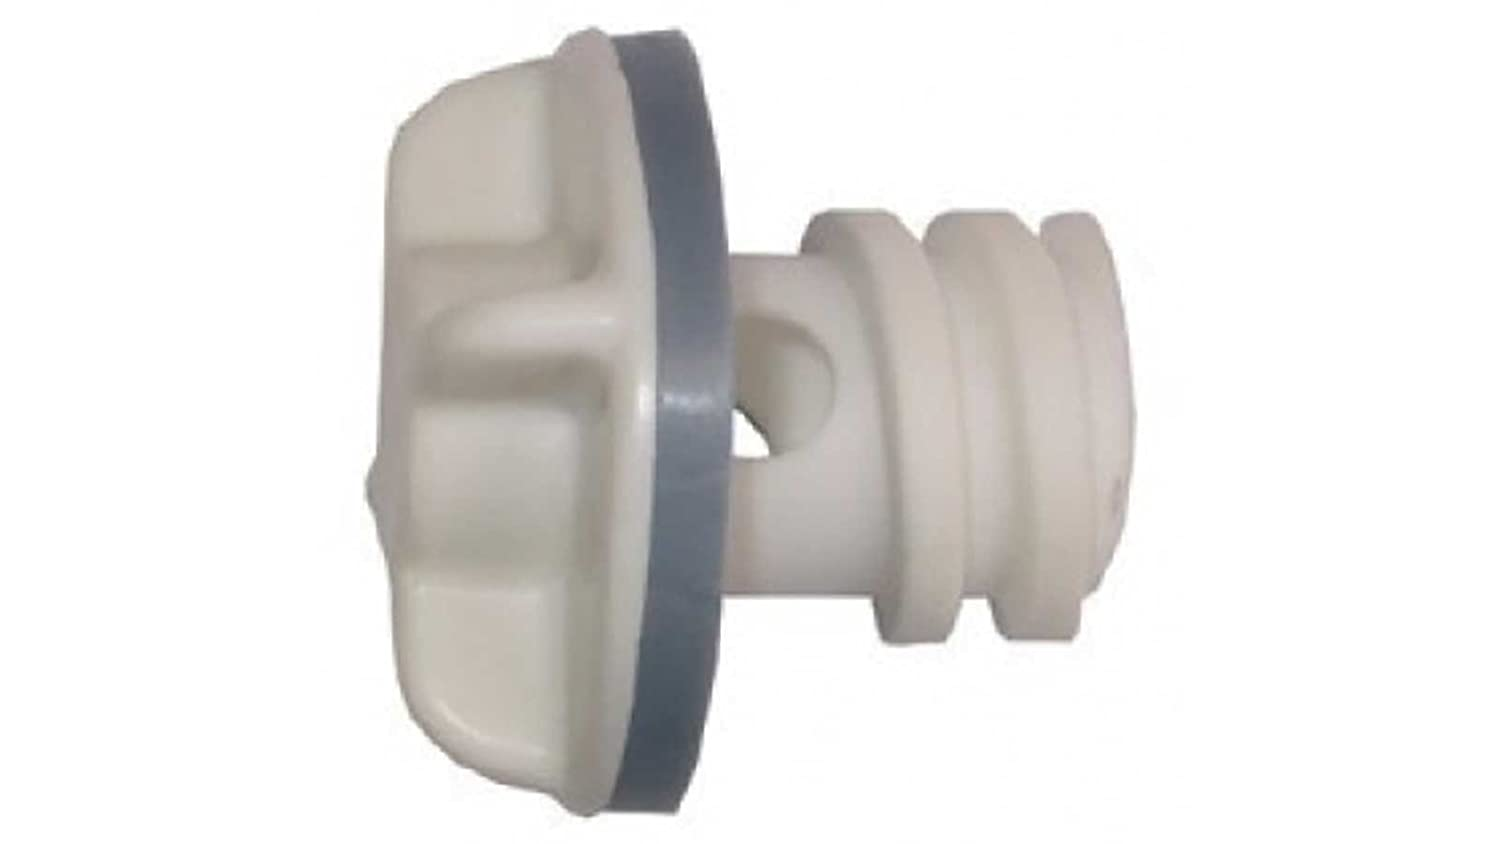 Engel Replacement Drain Plug - White